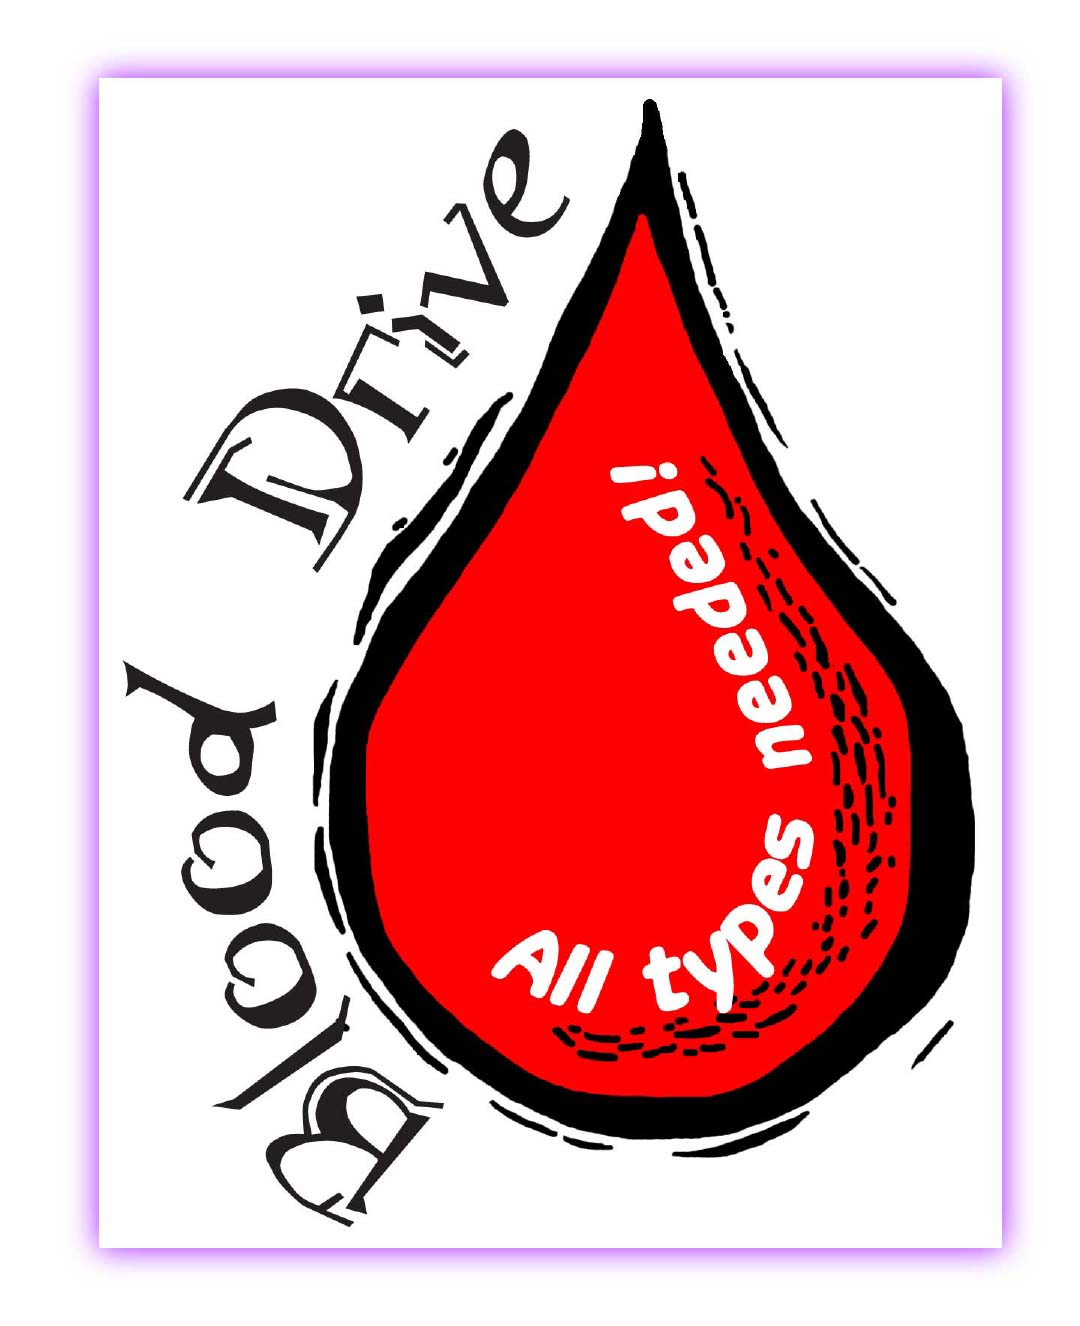 Blood clipart cross Up Radio Red For Donations